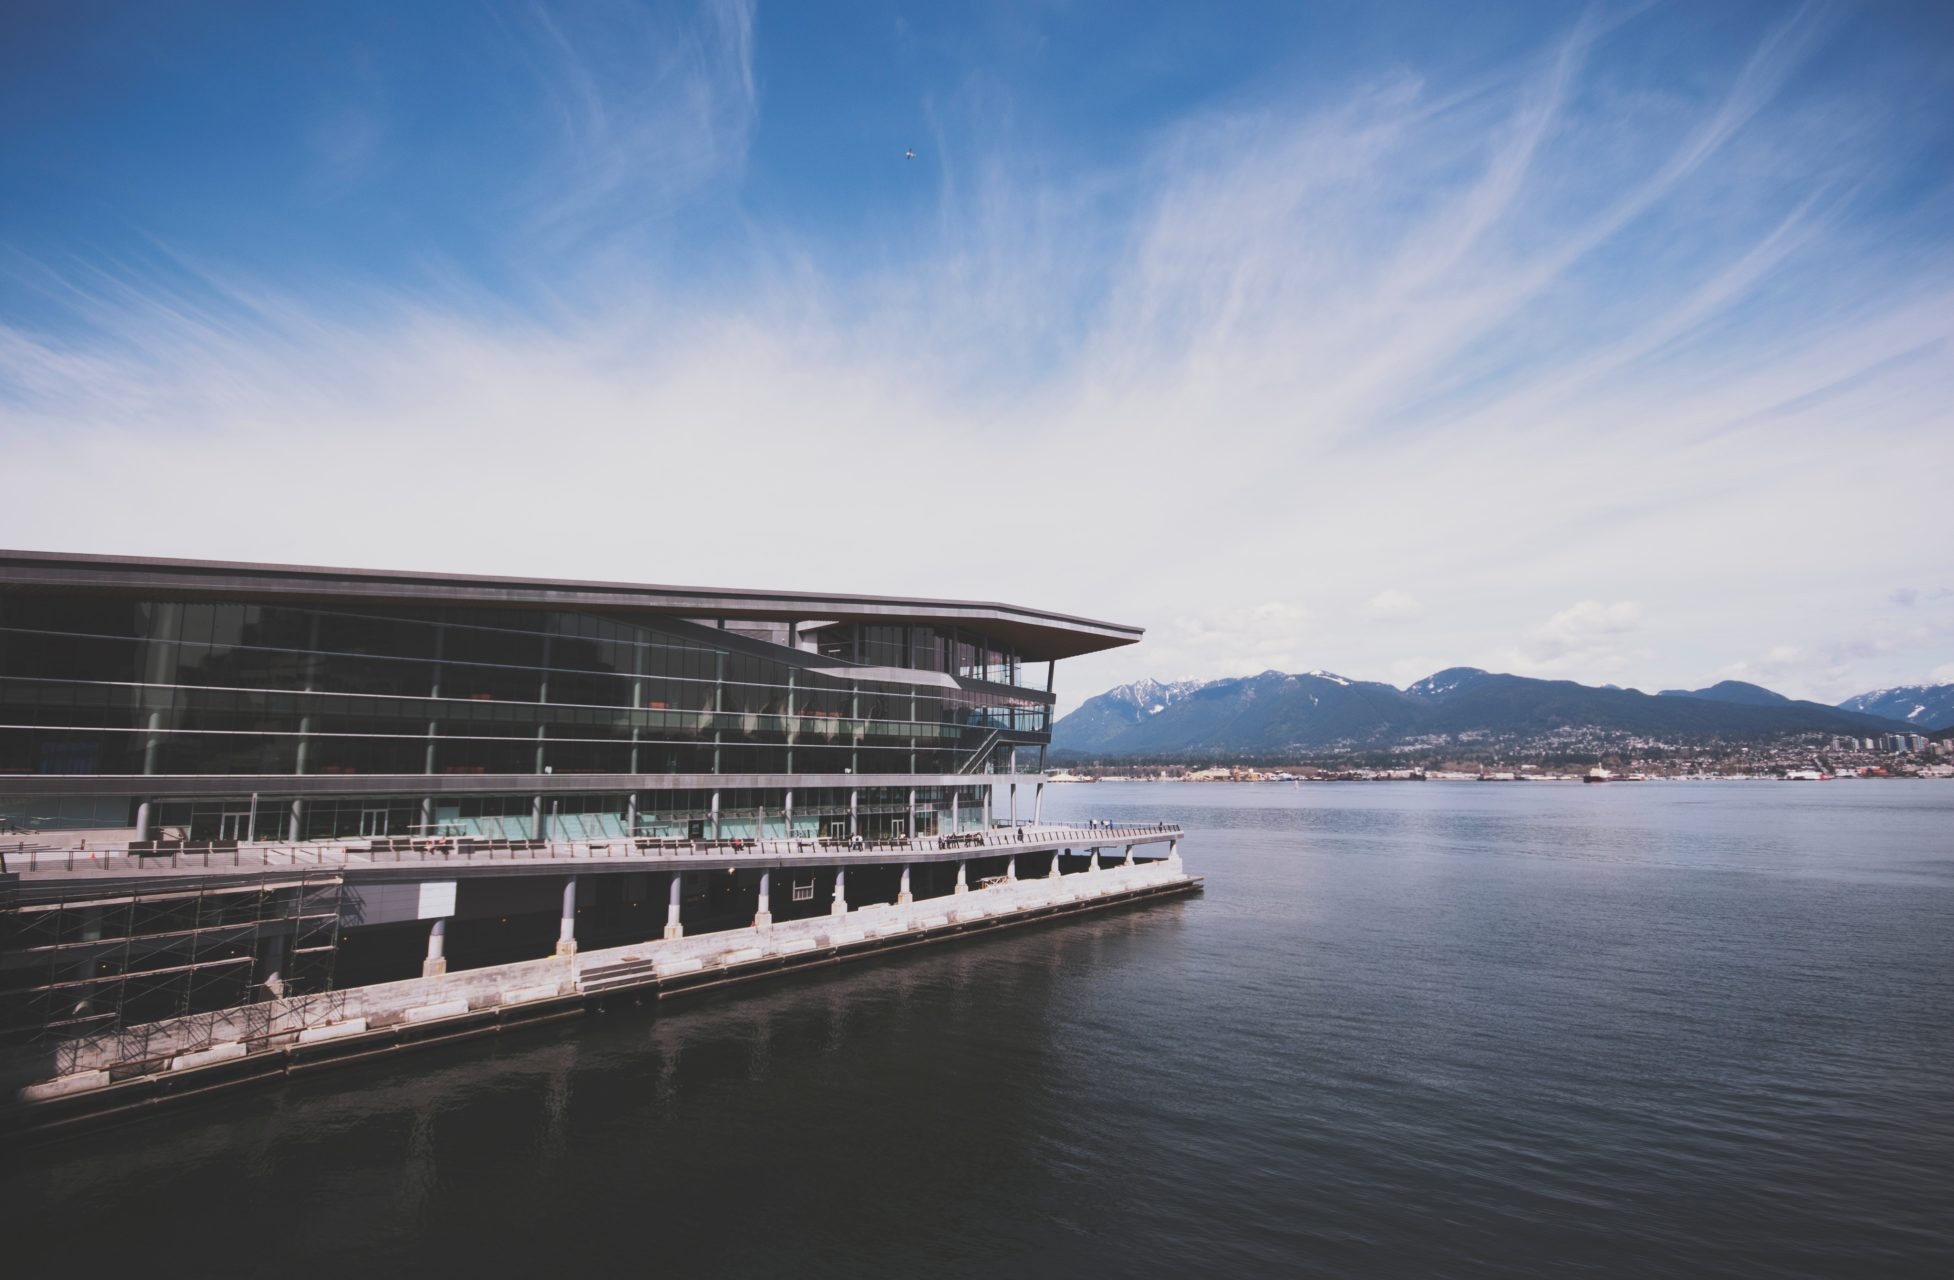 Conference center located right on the water